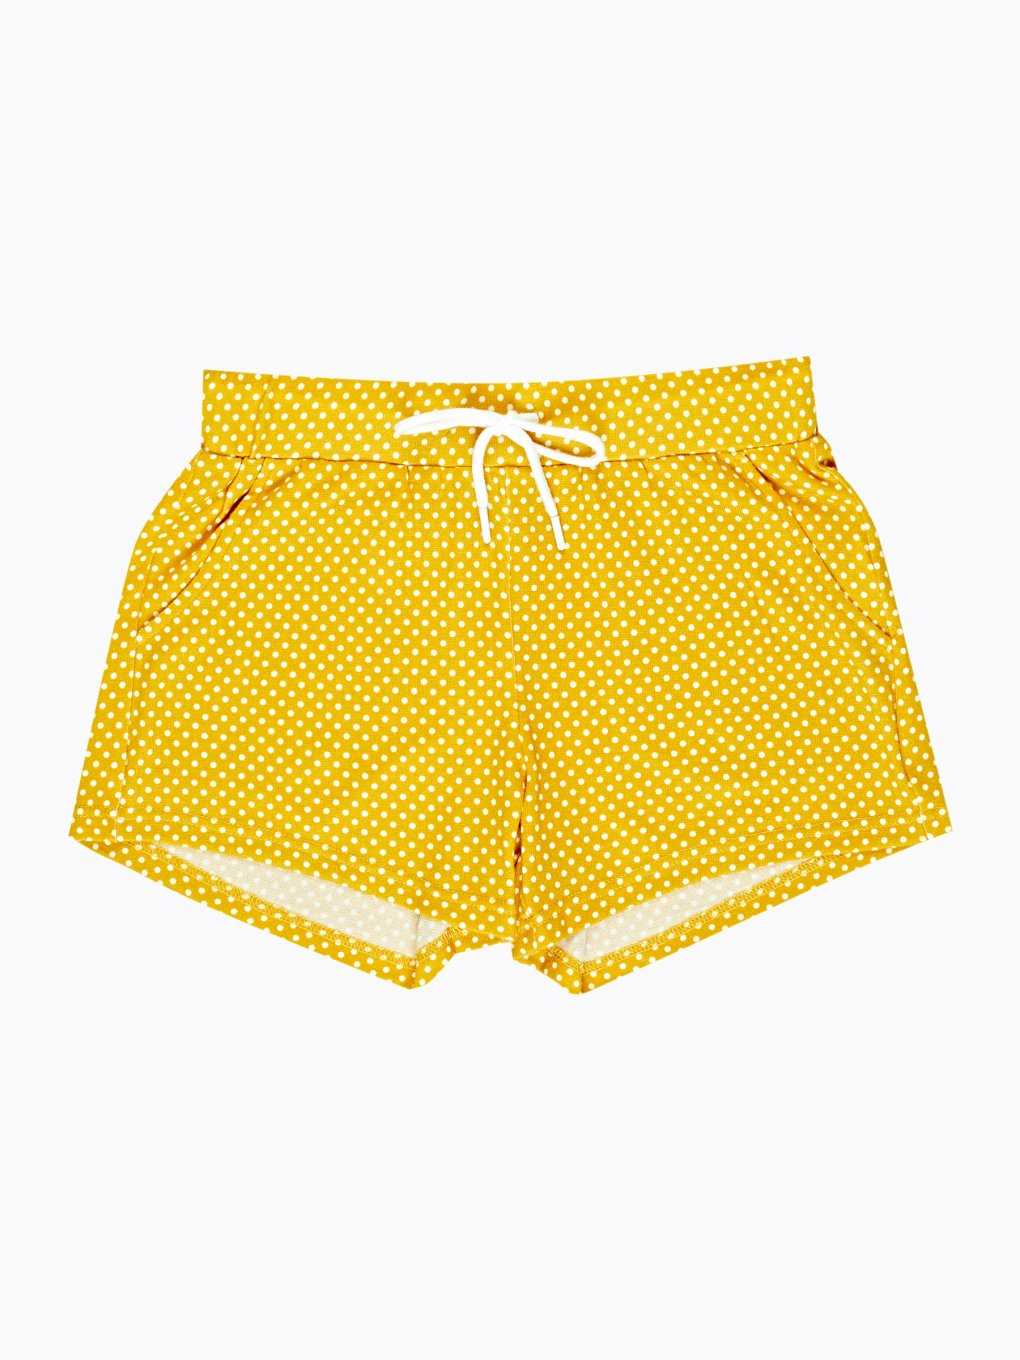 Polka dot print sweat shorts